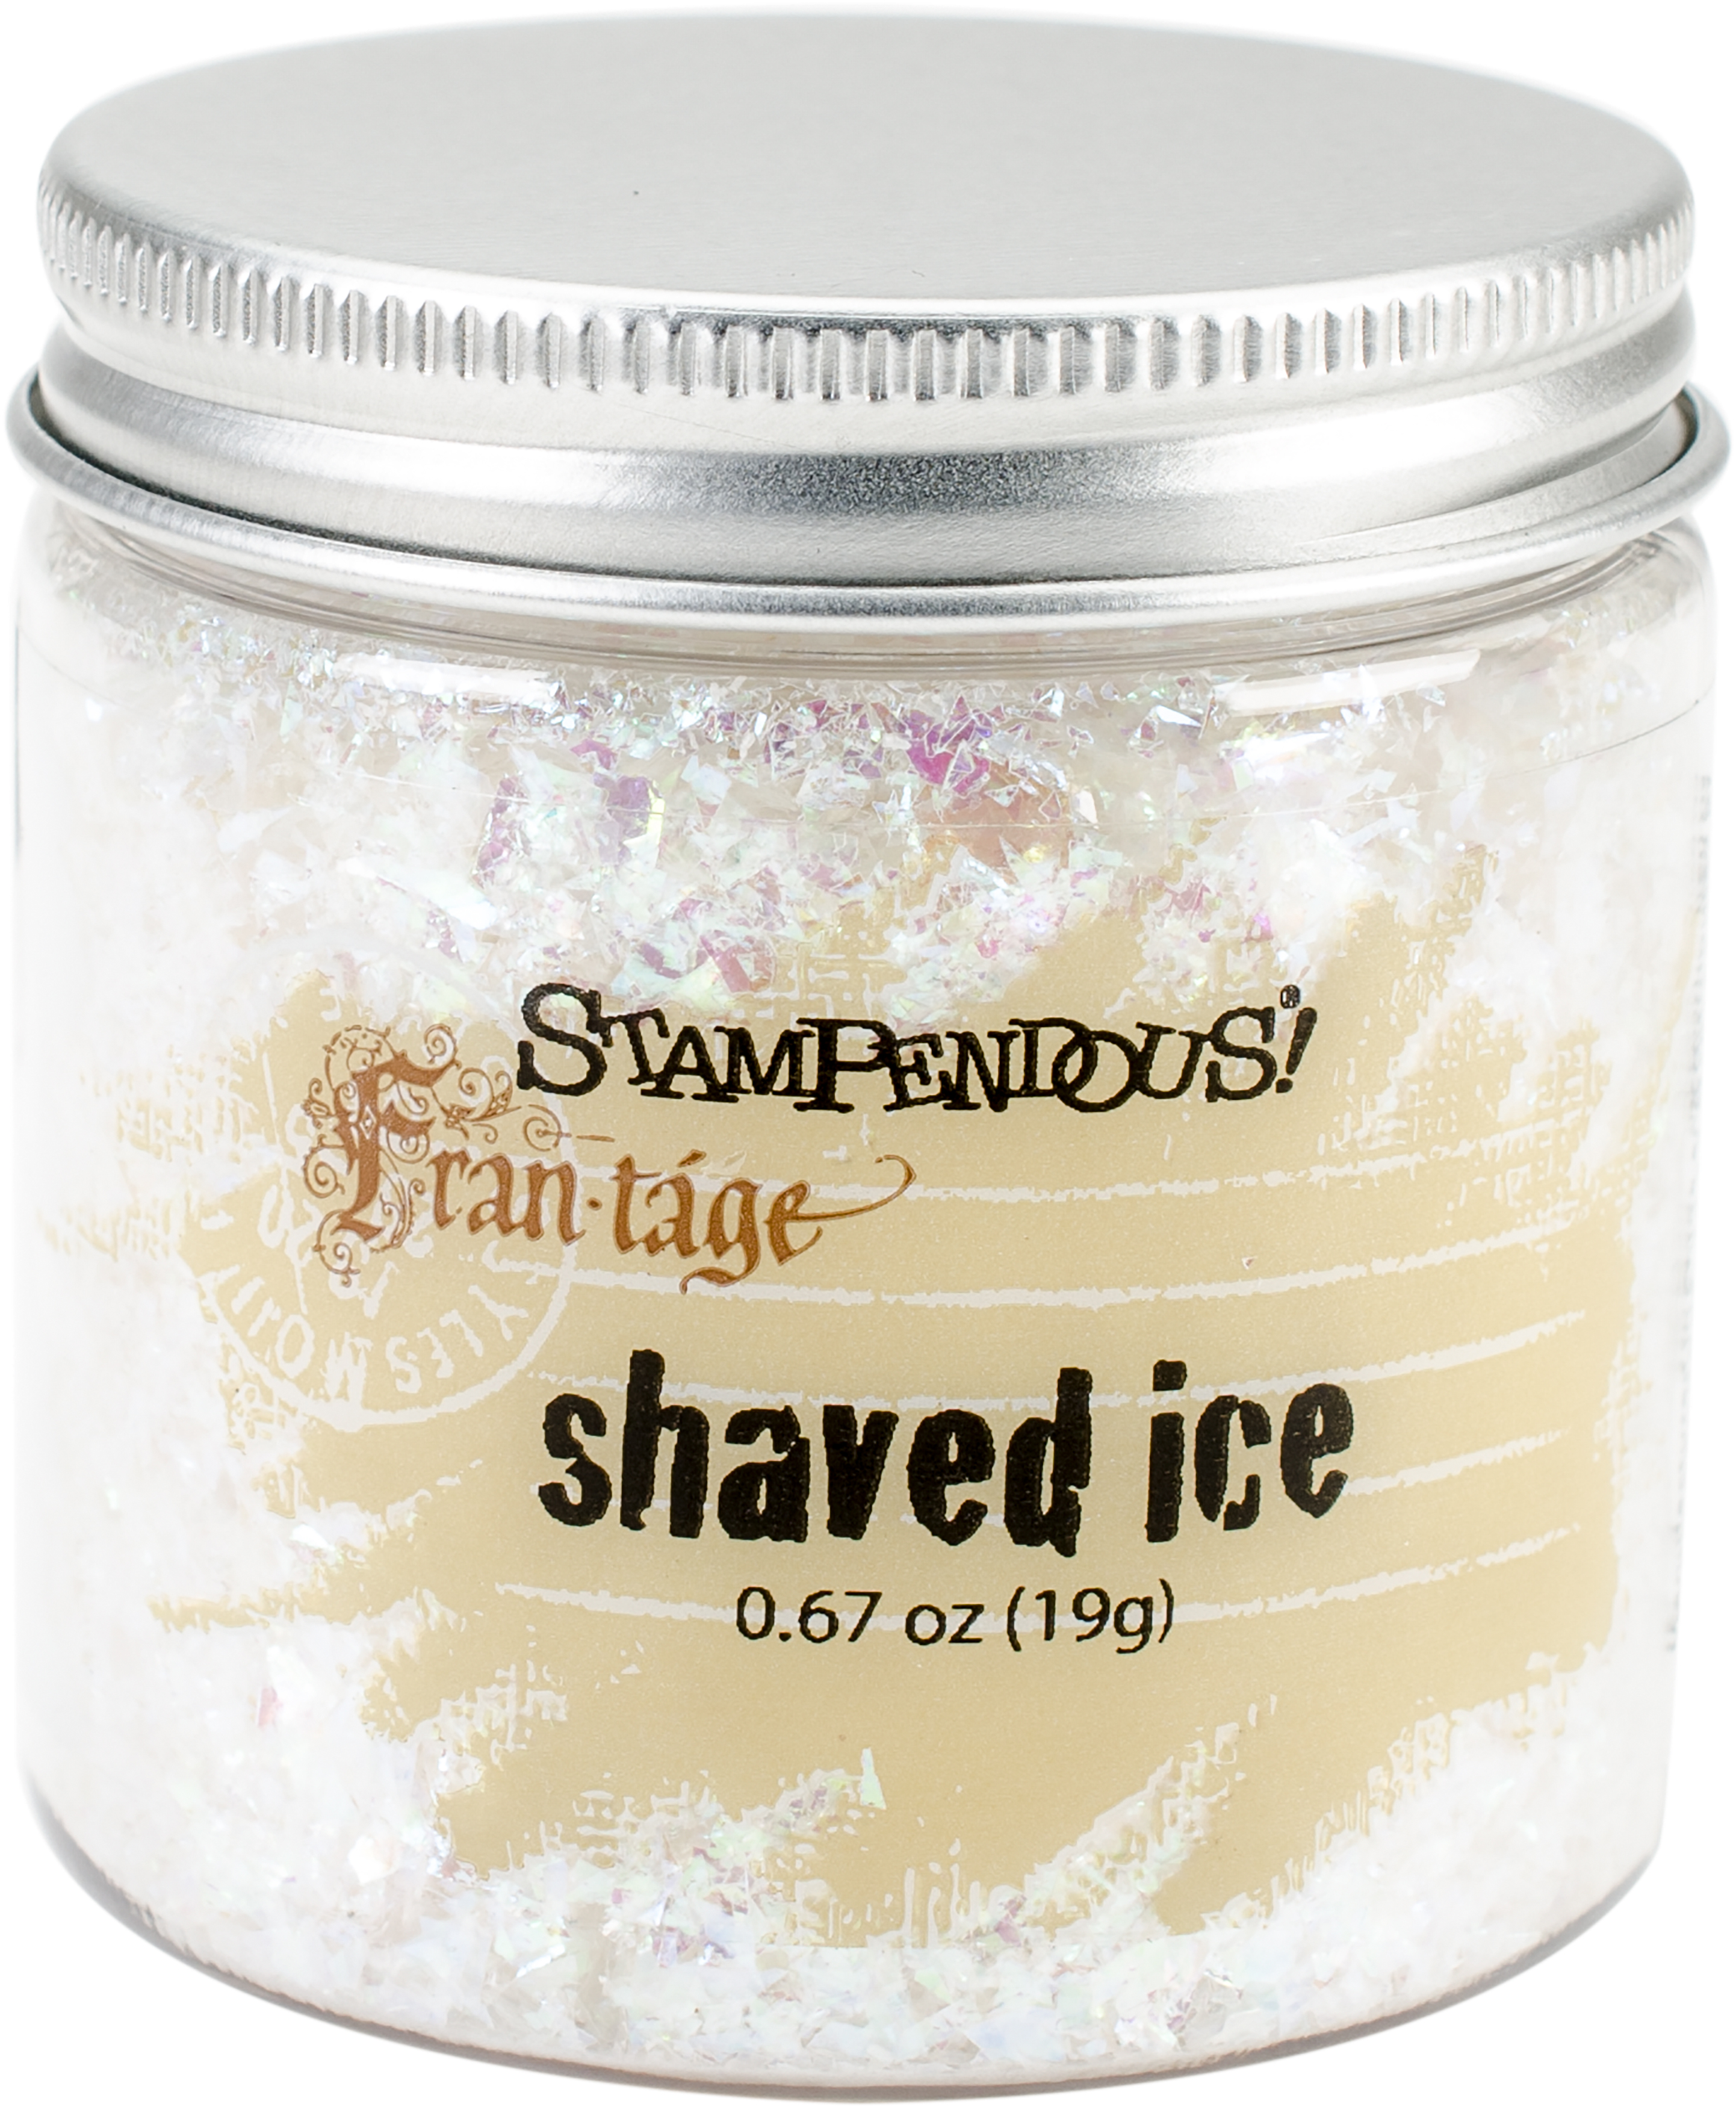 Stampendous Frantage Shaved Ice